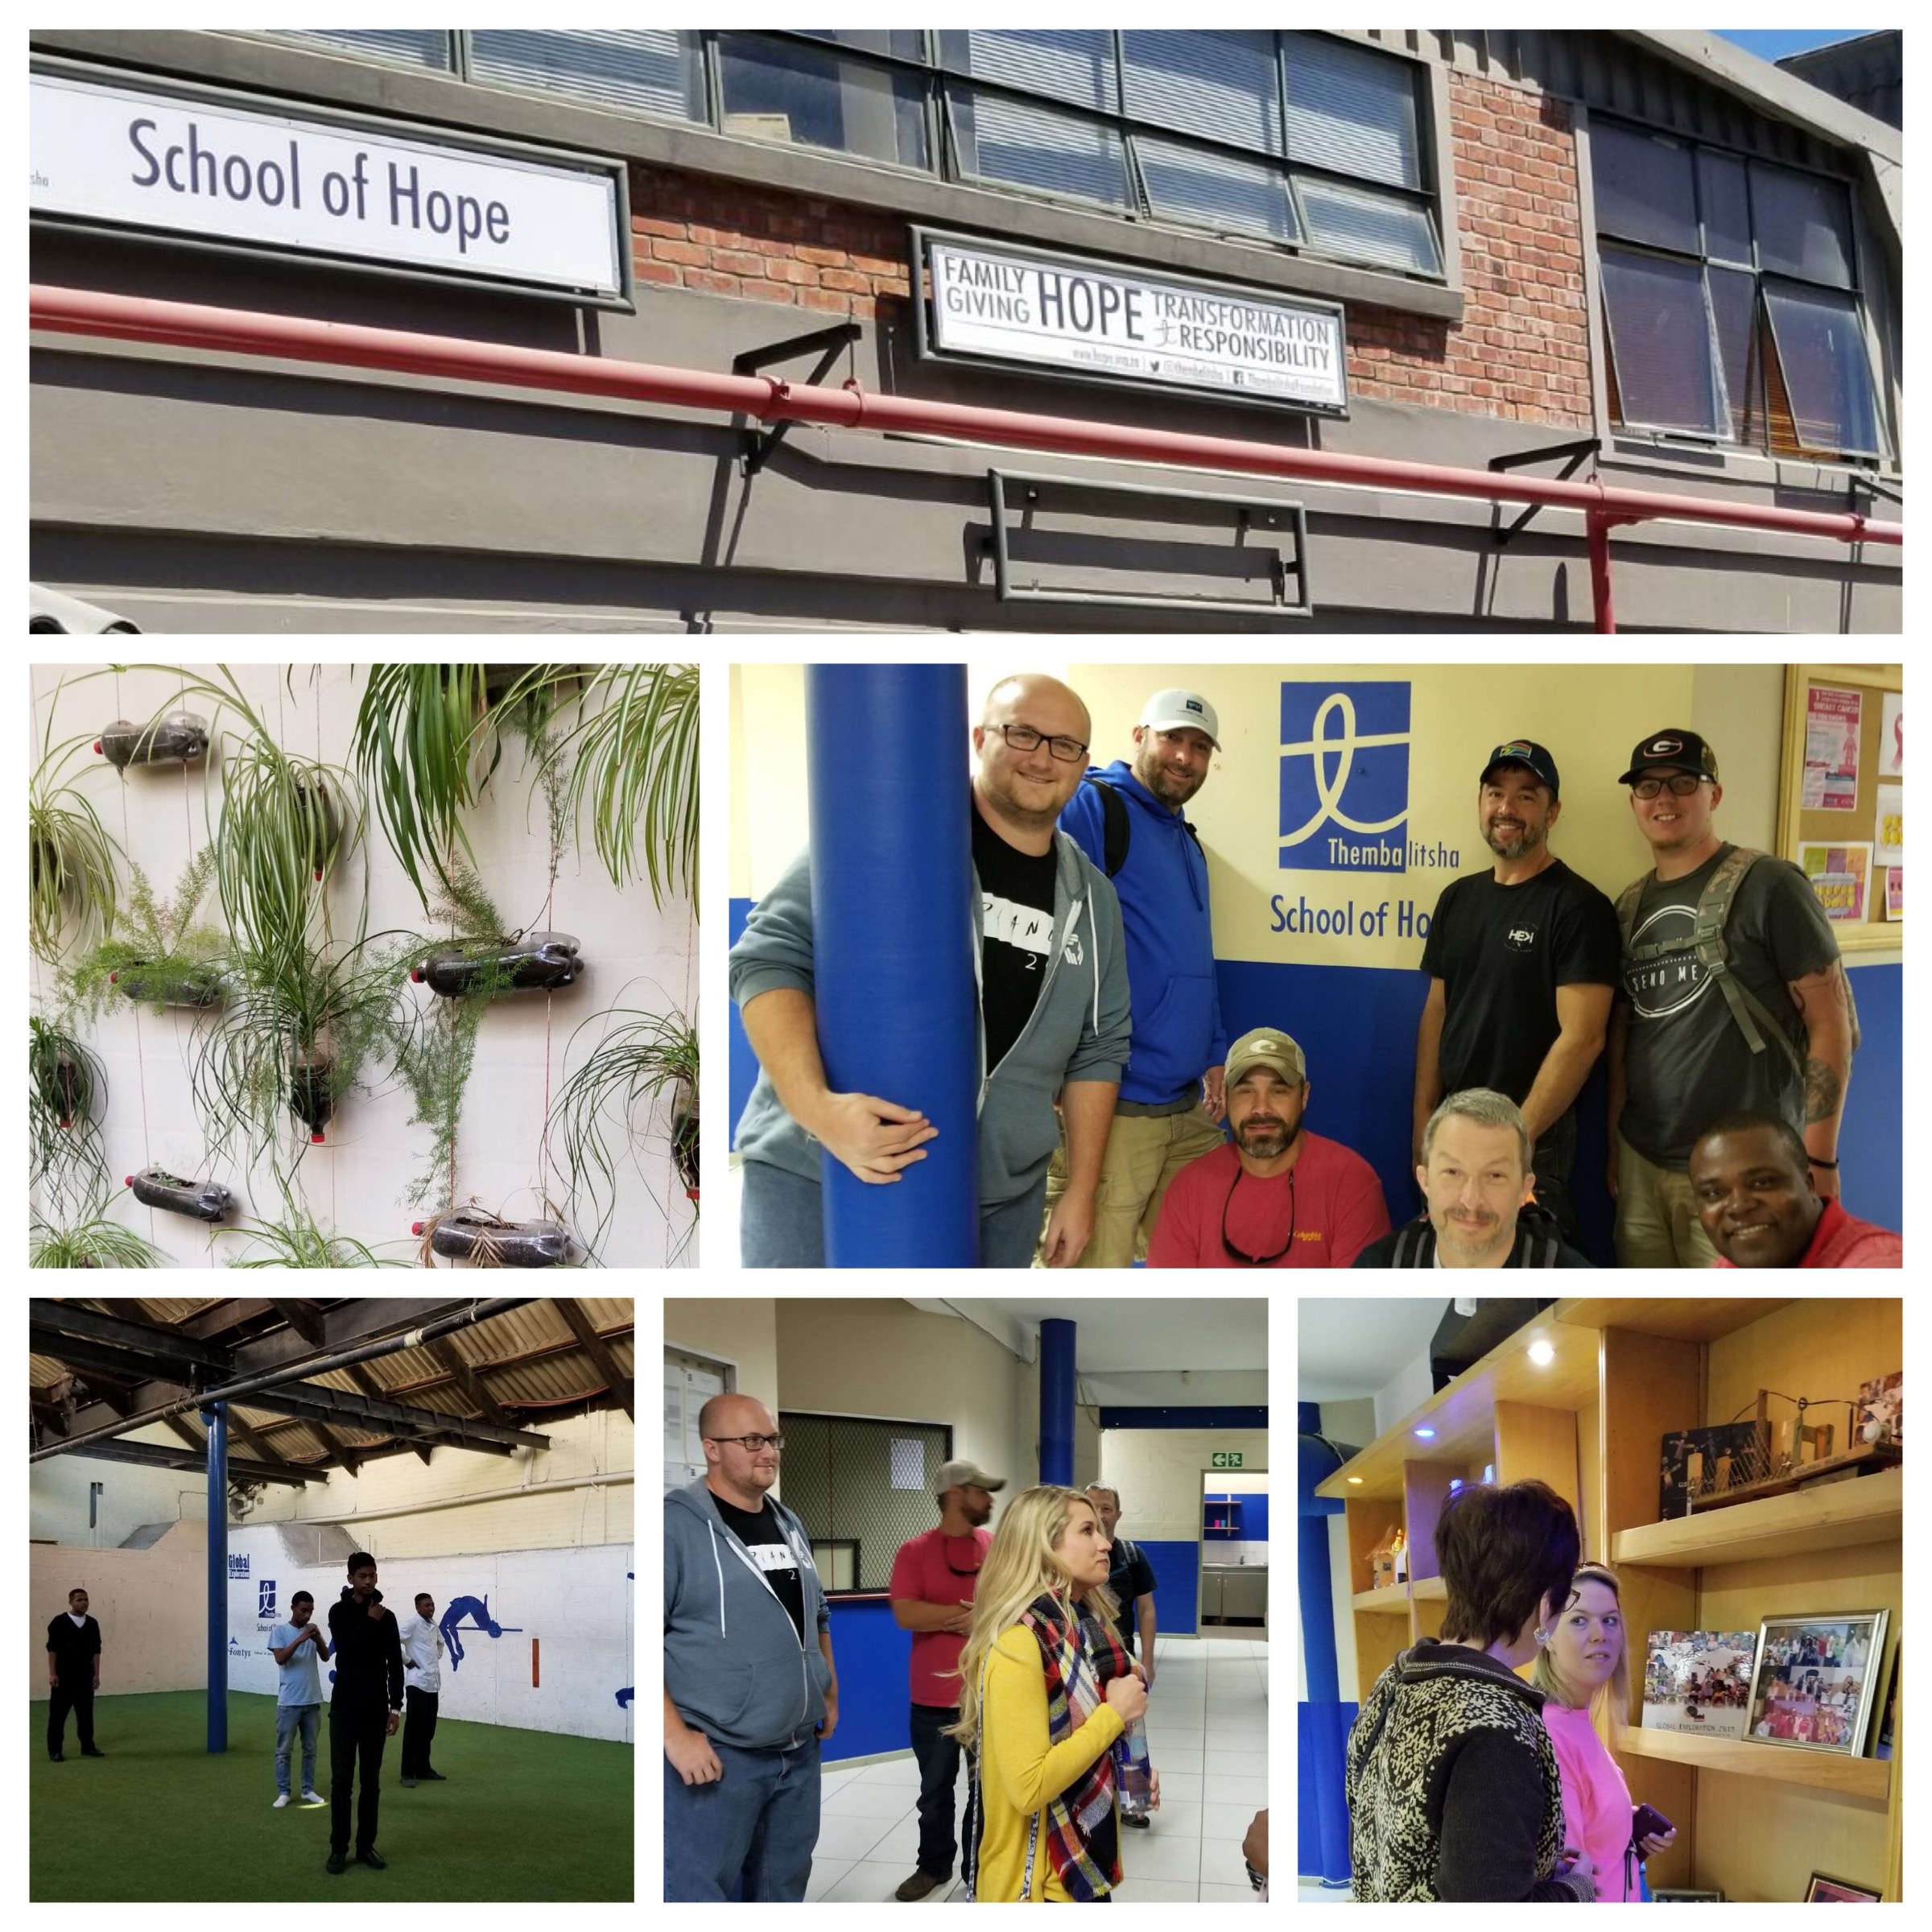 School of Hope visit. Always such a powerful time to see what the kids do from learning to plant flowers, sport, academia, and more.